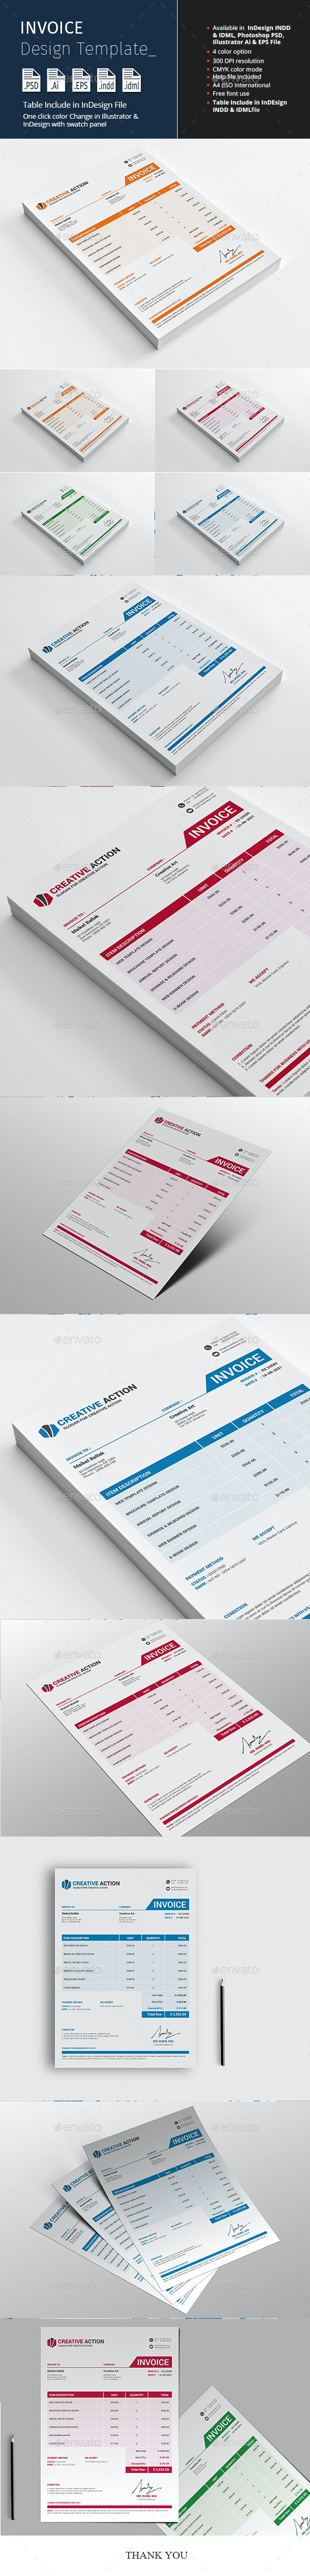 Invoice Design Template - Proposals & Invoices Stationery